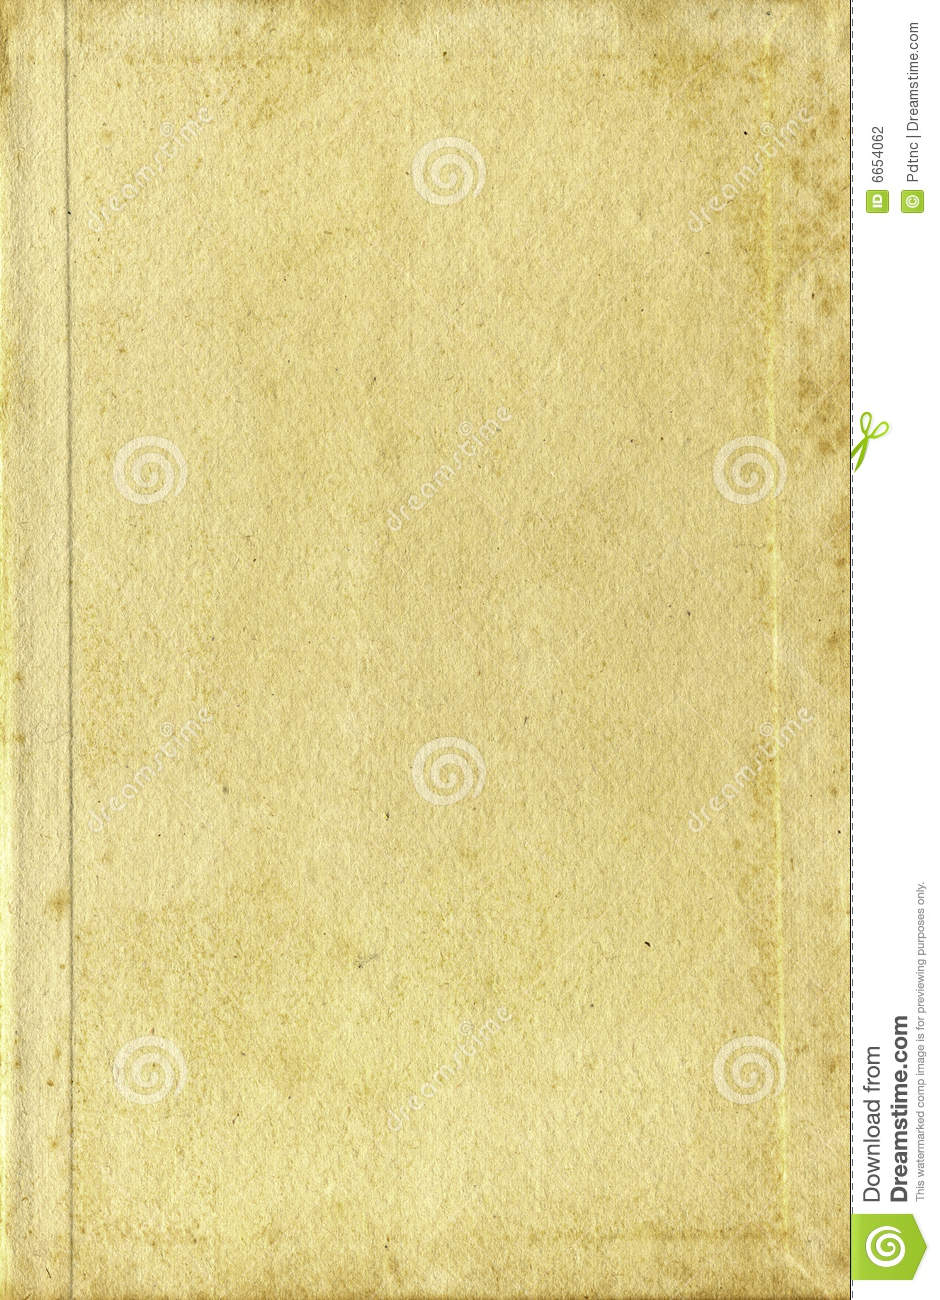 Download Old Book Cover Paper Pages Textures Stock Photo